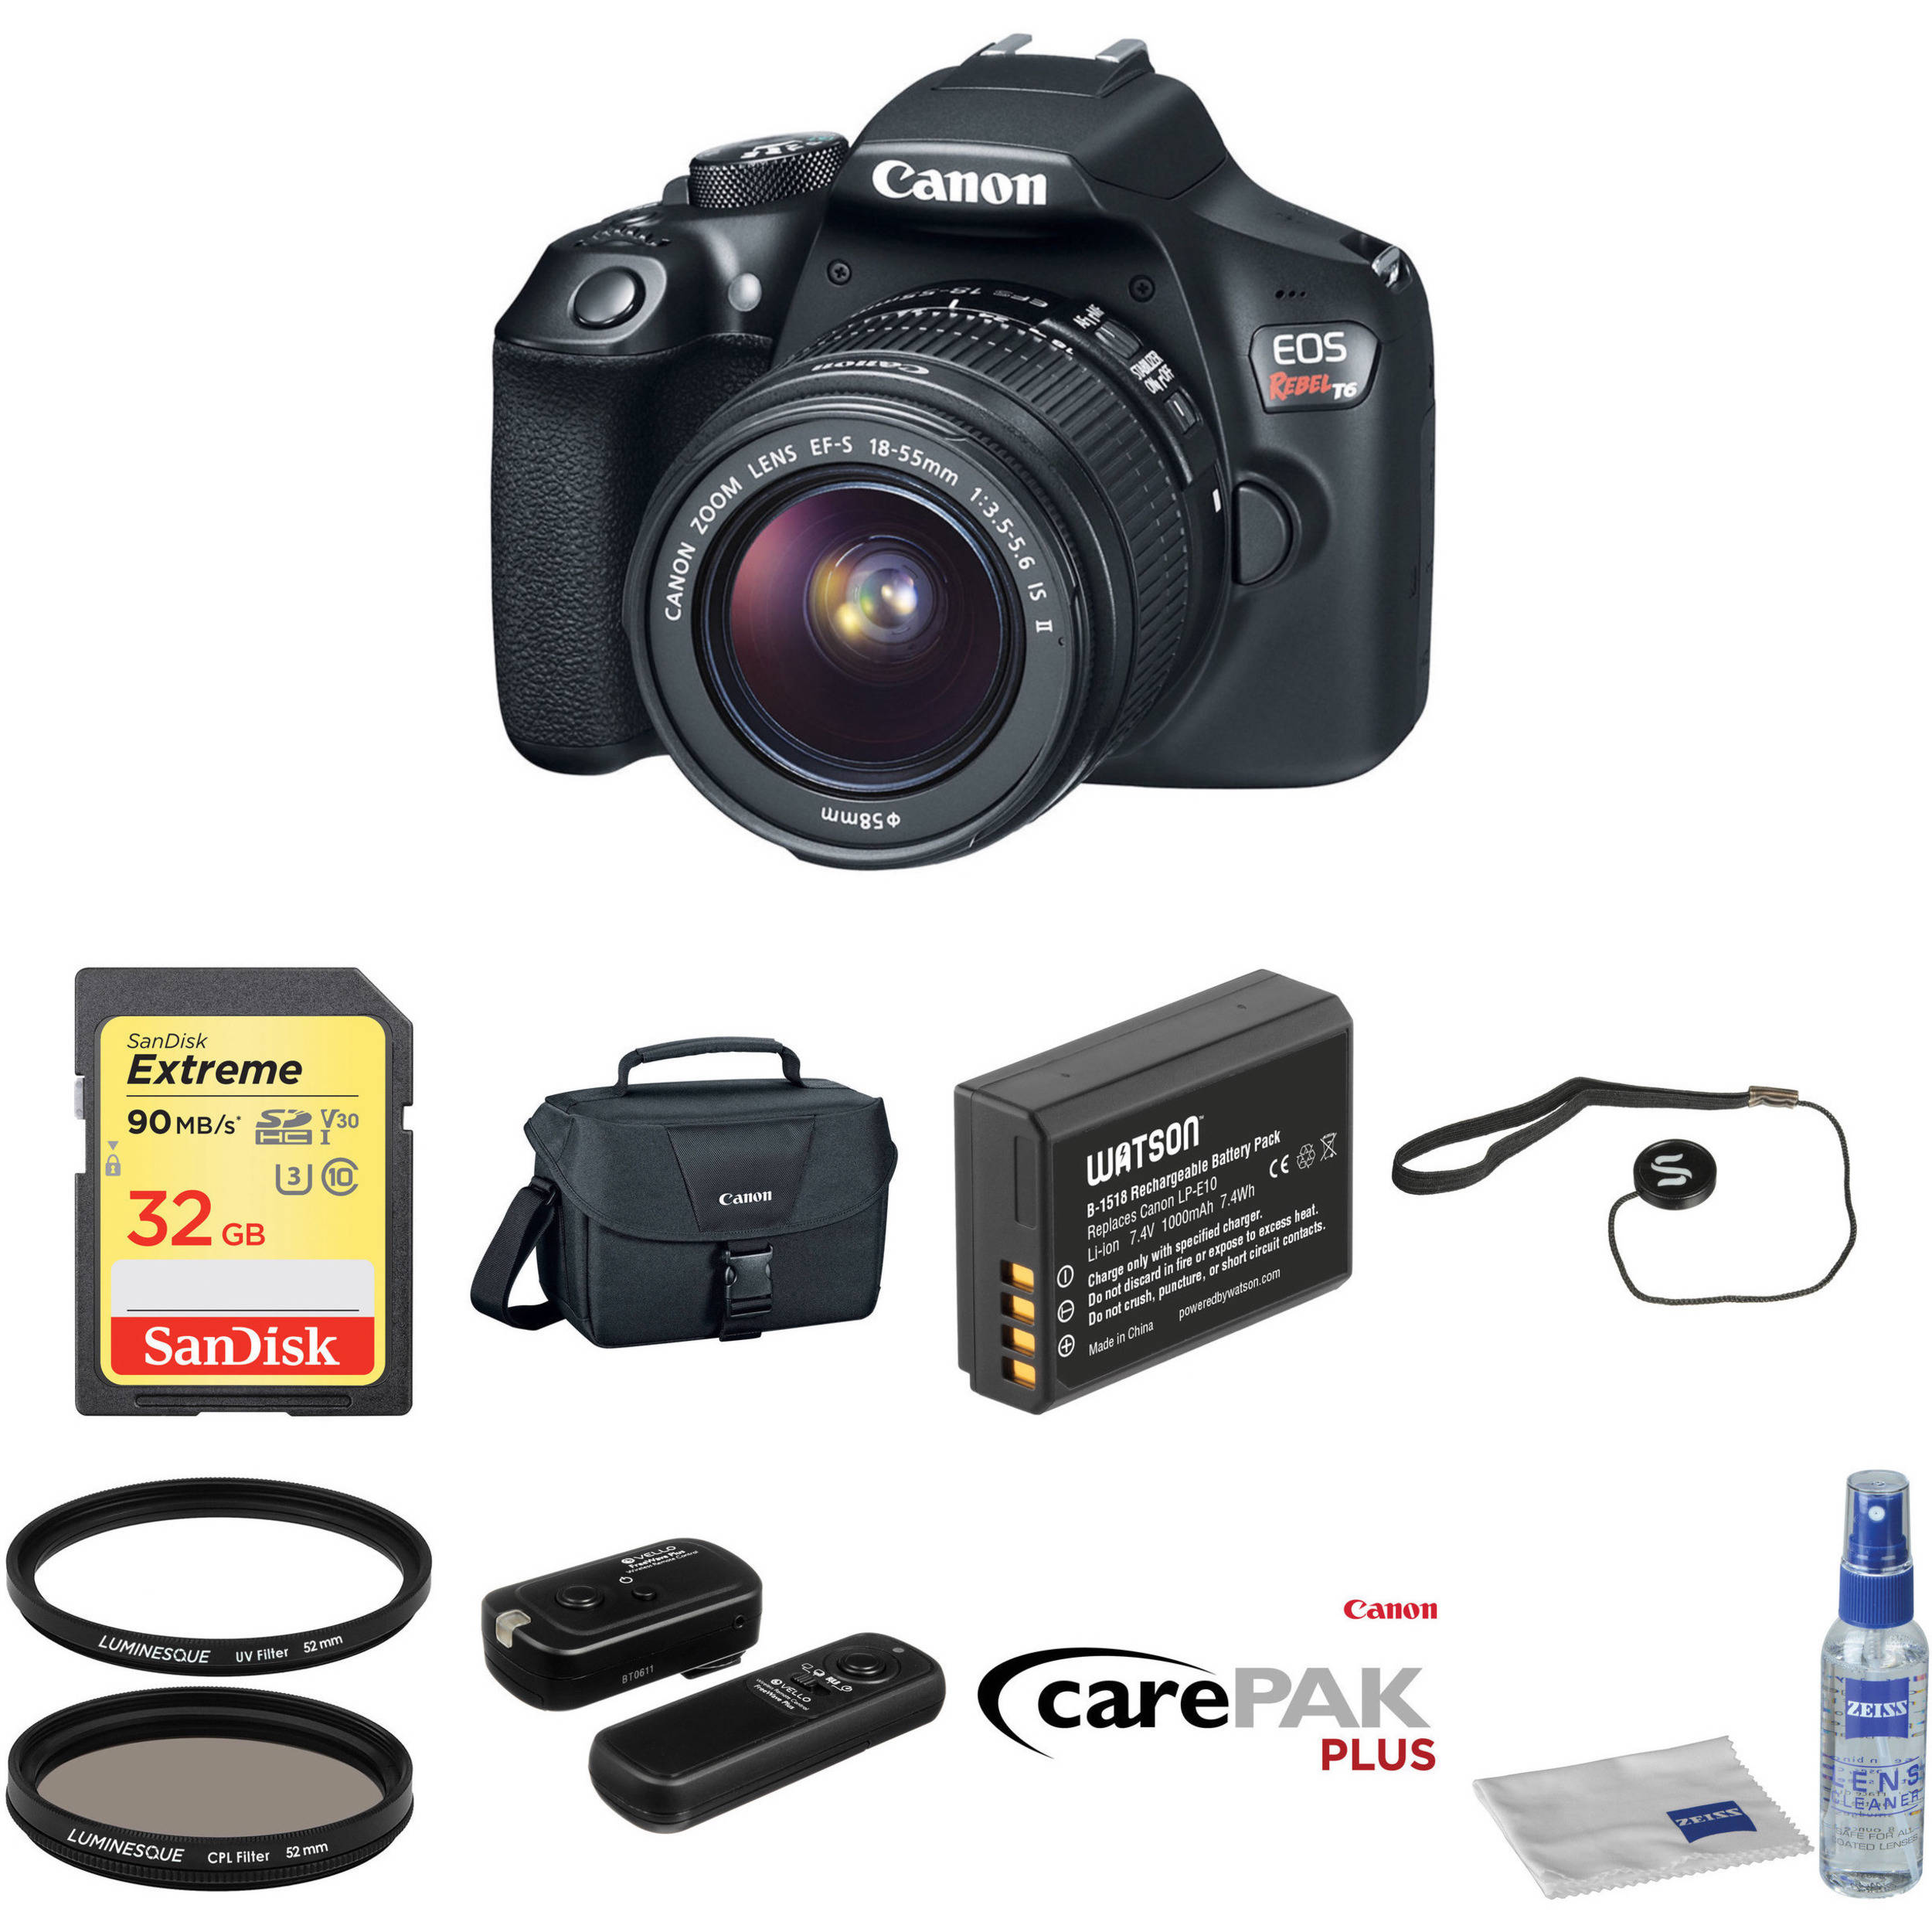 Canon EOS Rebel T6 DSLR Camera with 18-55mm Lens Deluxe Kit